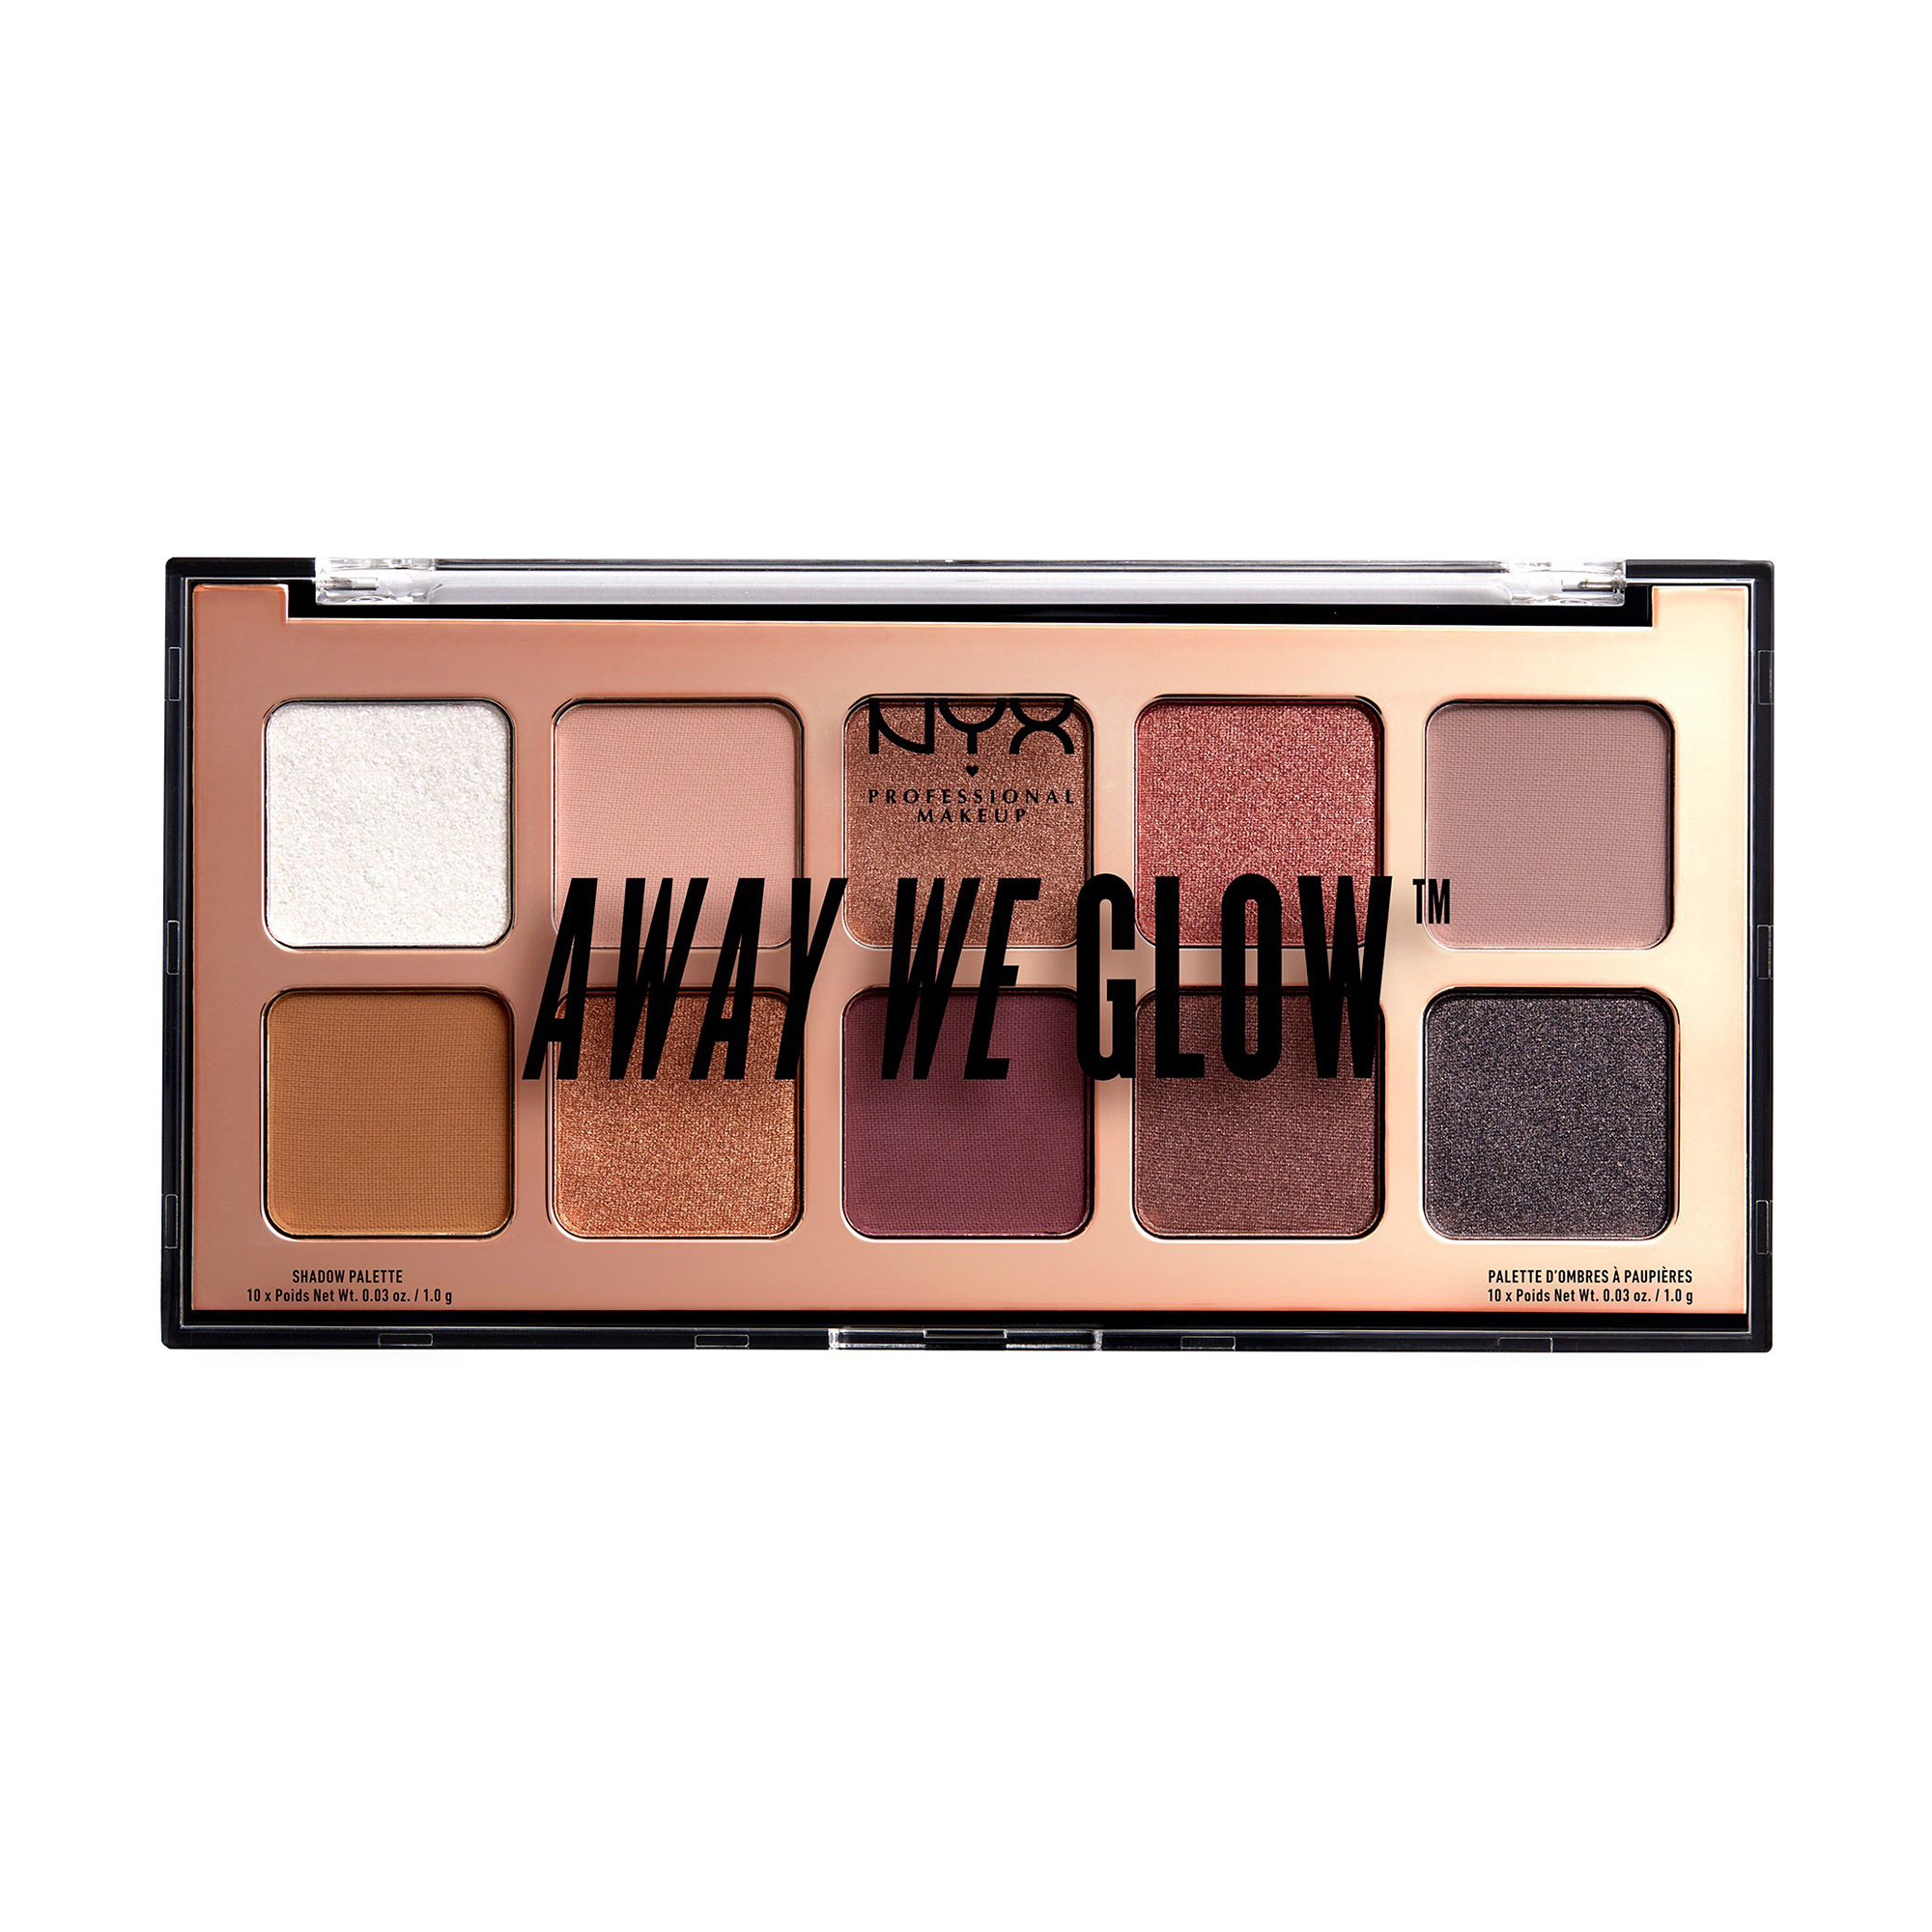 Купить Палетка теней NYX Professional Makeup Away Weгlow Shadow Palette 01 Love Beam 10г